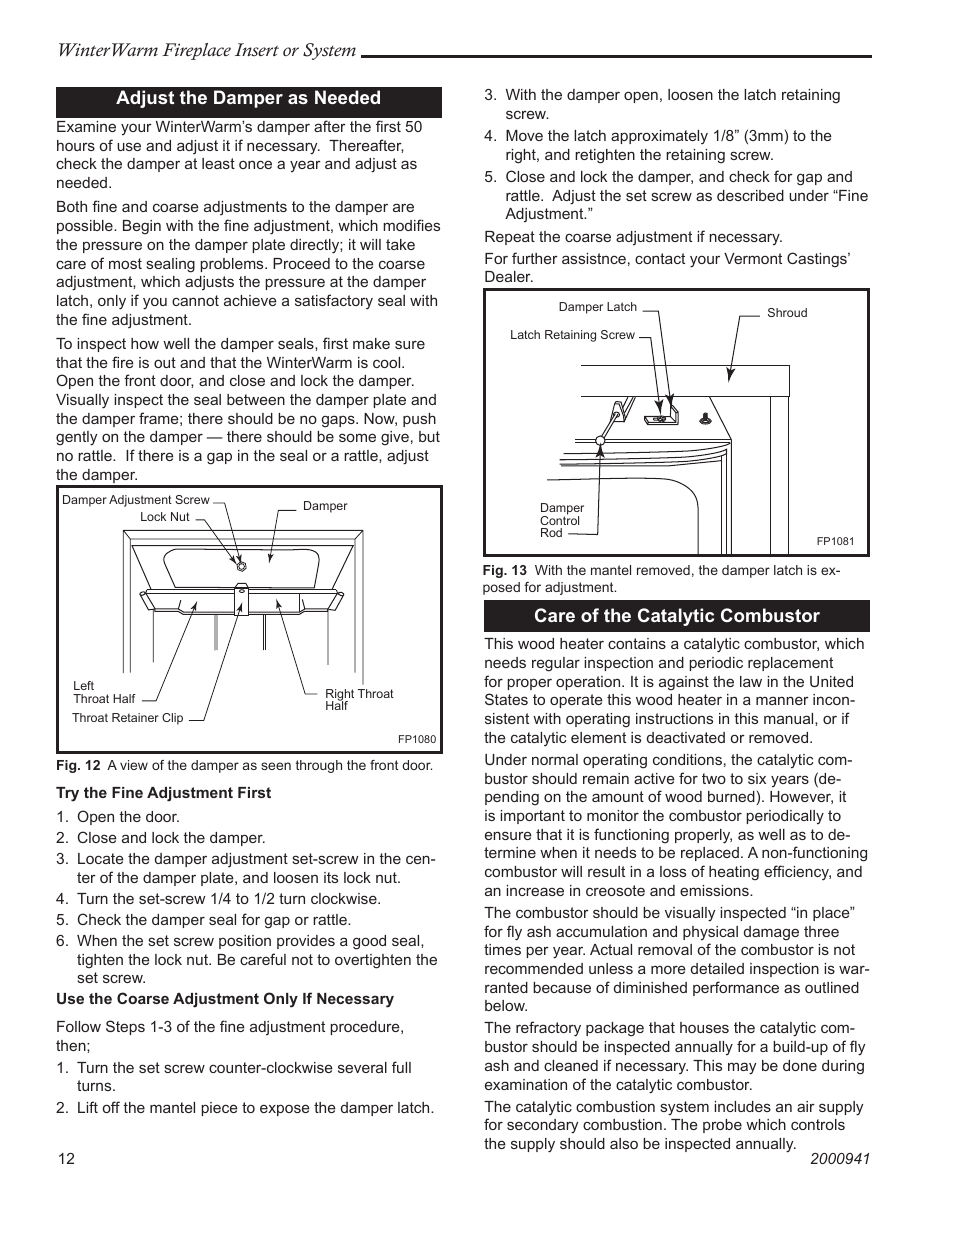 Vermont Casting Winterwarm Fireplace Insert Or System User Manual Page 12 44